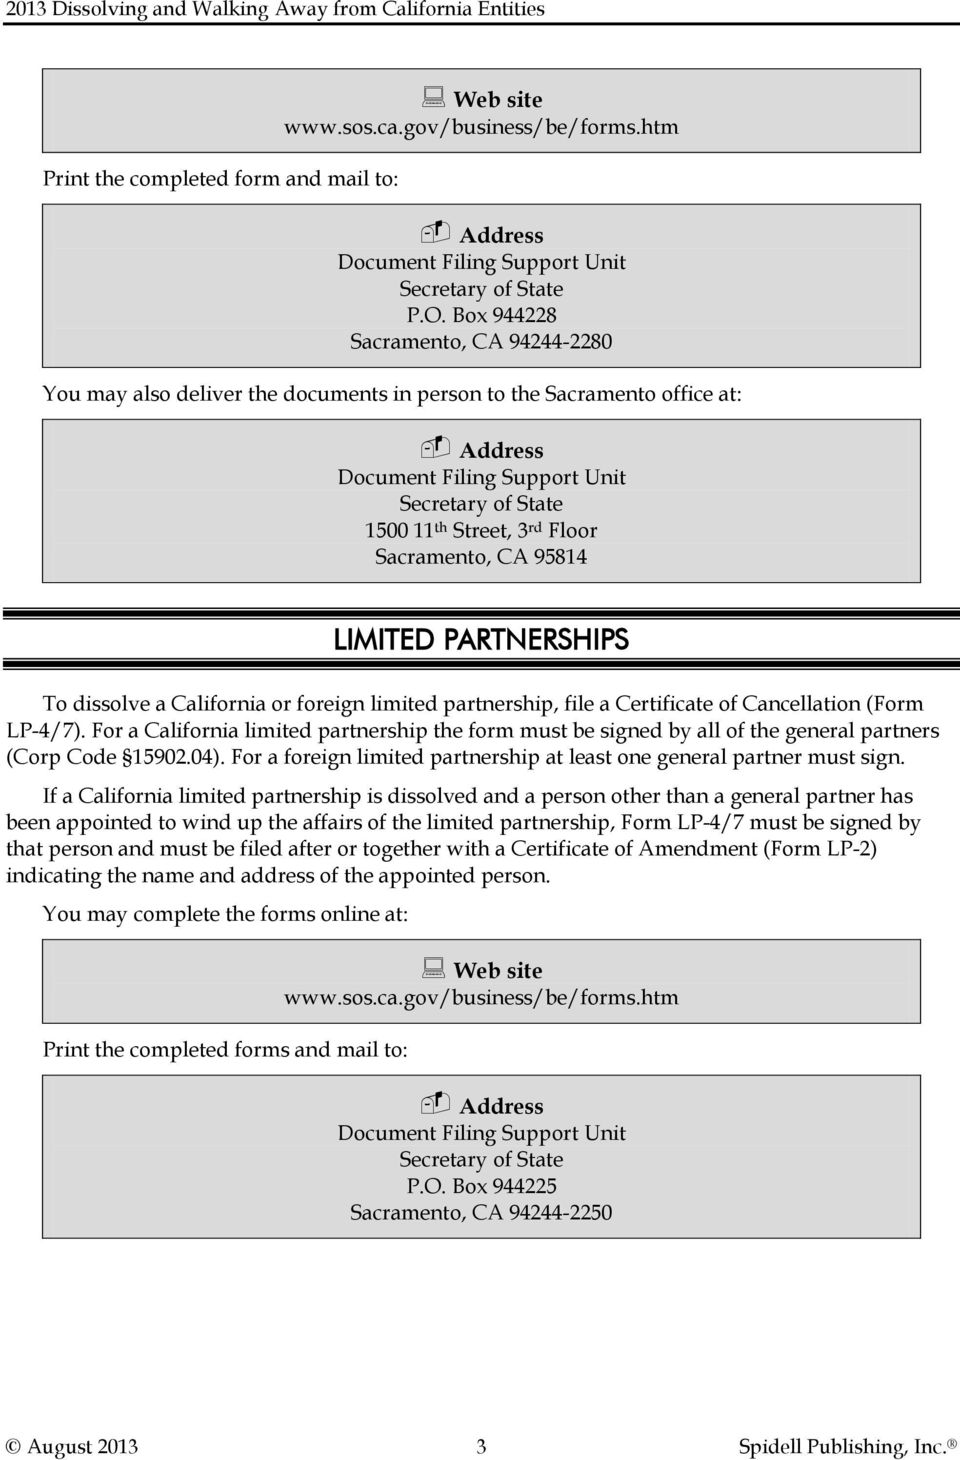 2013 dissolving and walking away from california entities pdf sacramento ca 95814 limited partnerships to dissolve a california or foreign limited partnership file falaconquin